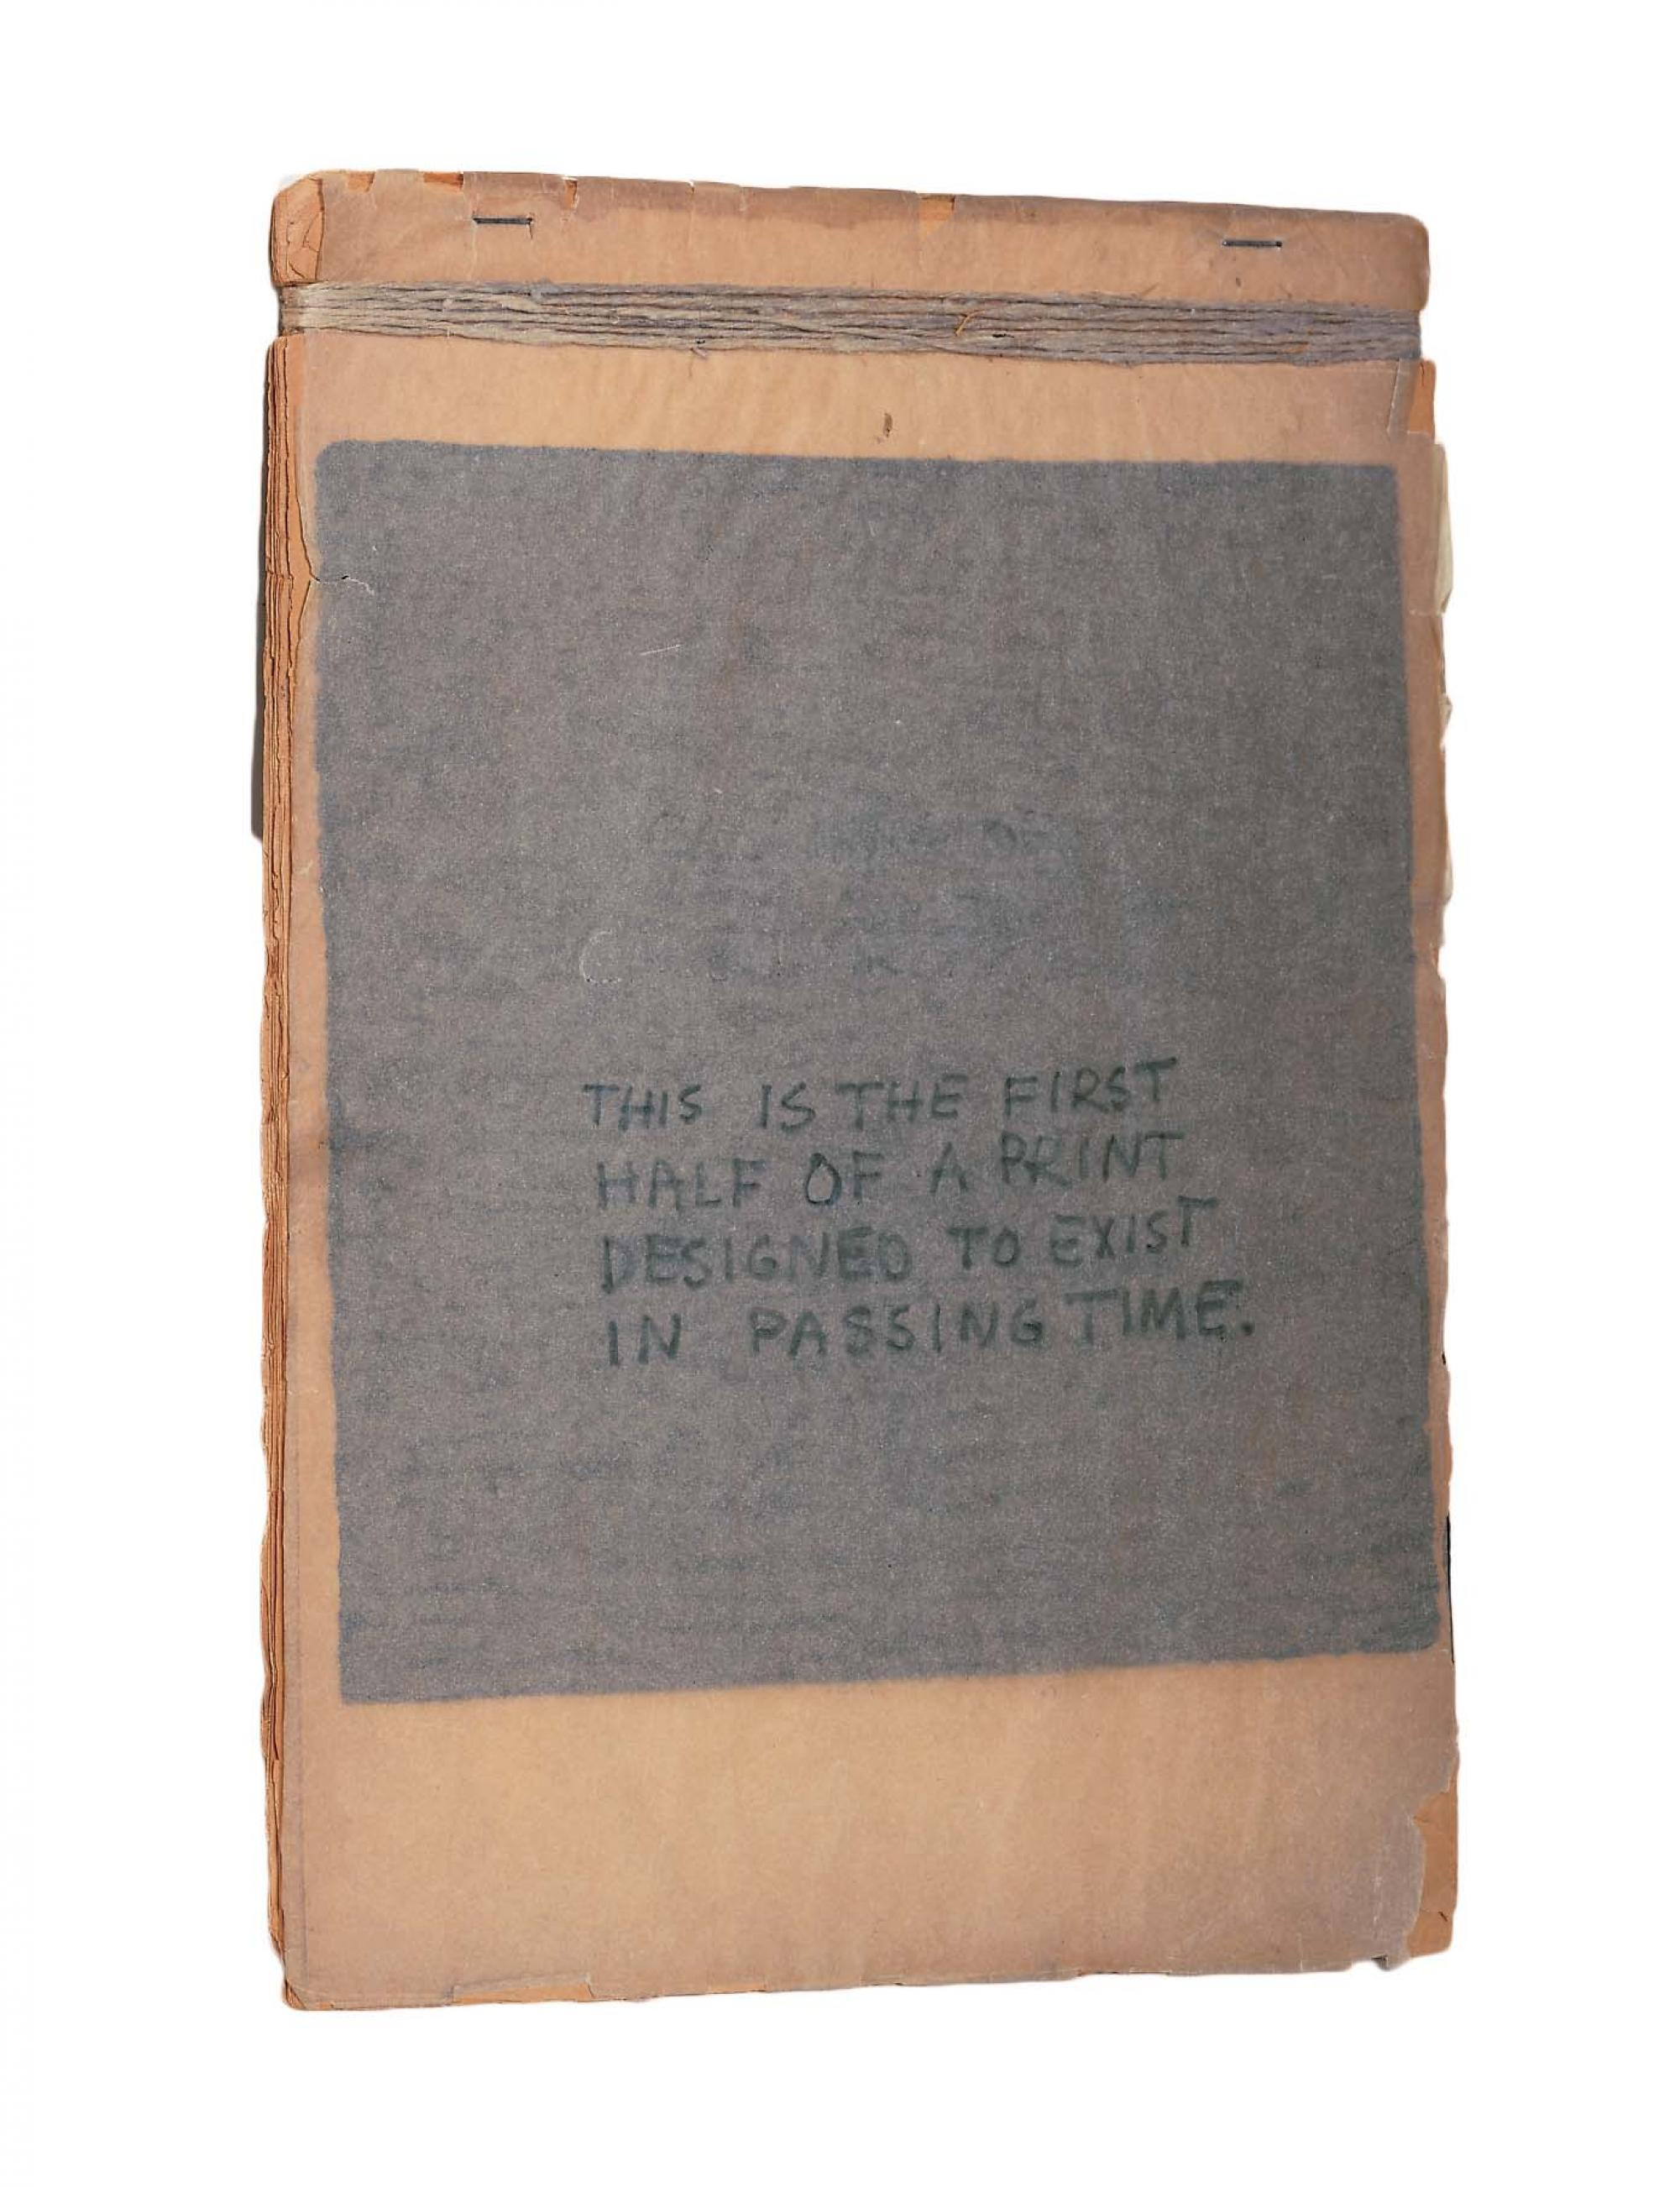 Robert Rauschenberg, This Is the First Half of a Print Designed to Exist in Passing Time (1948). Graphite on tracing paper and 14 woodcuts on paper, bound with twine and stapled [30.8 x 22.5 cm]. Robert Rauschenberg Foundation, New York.